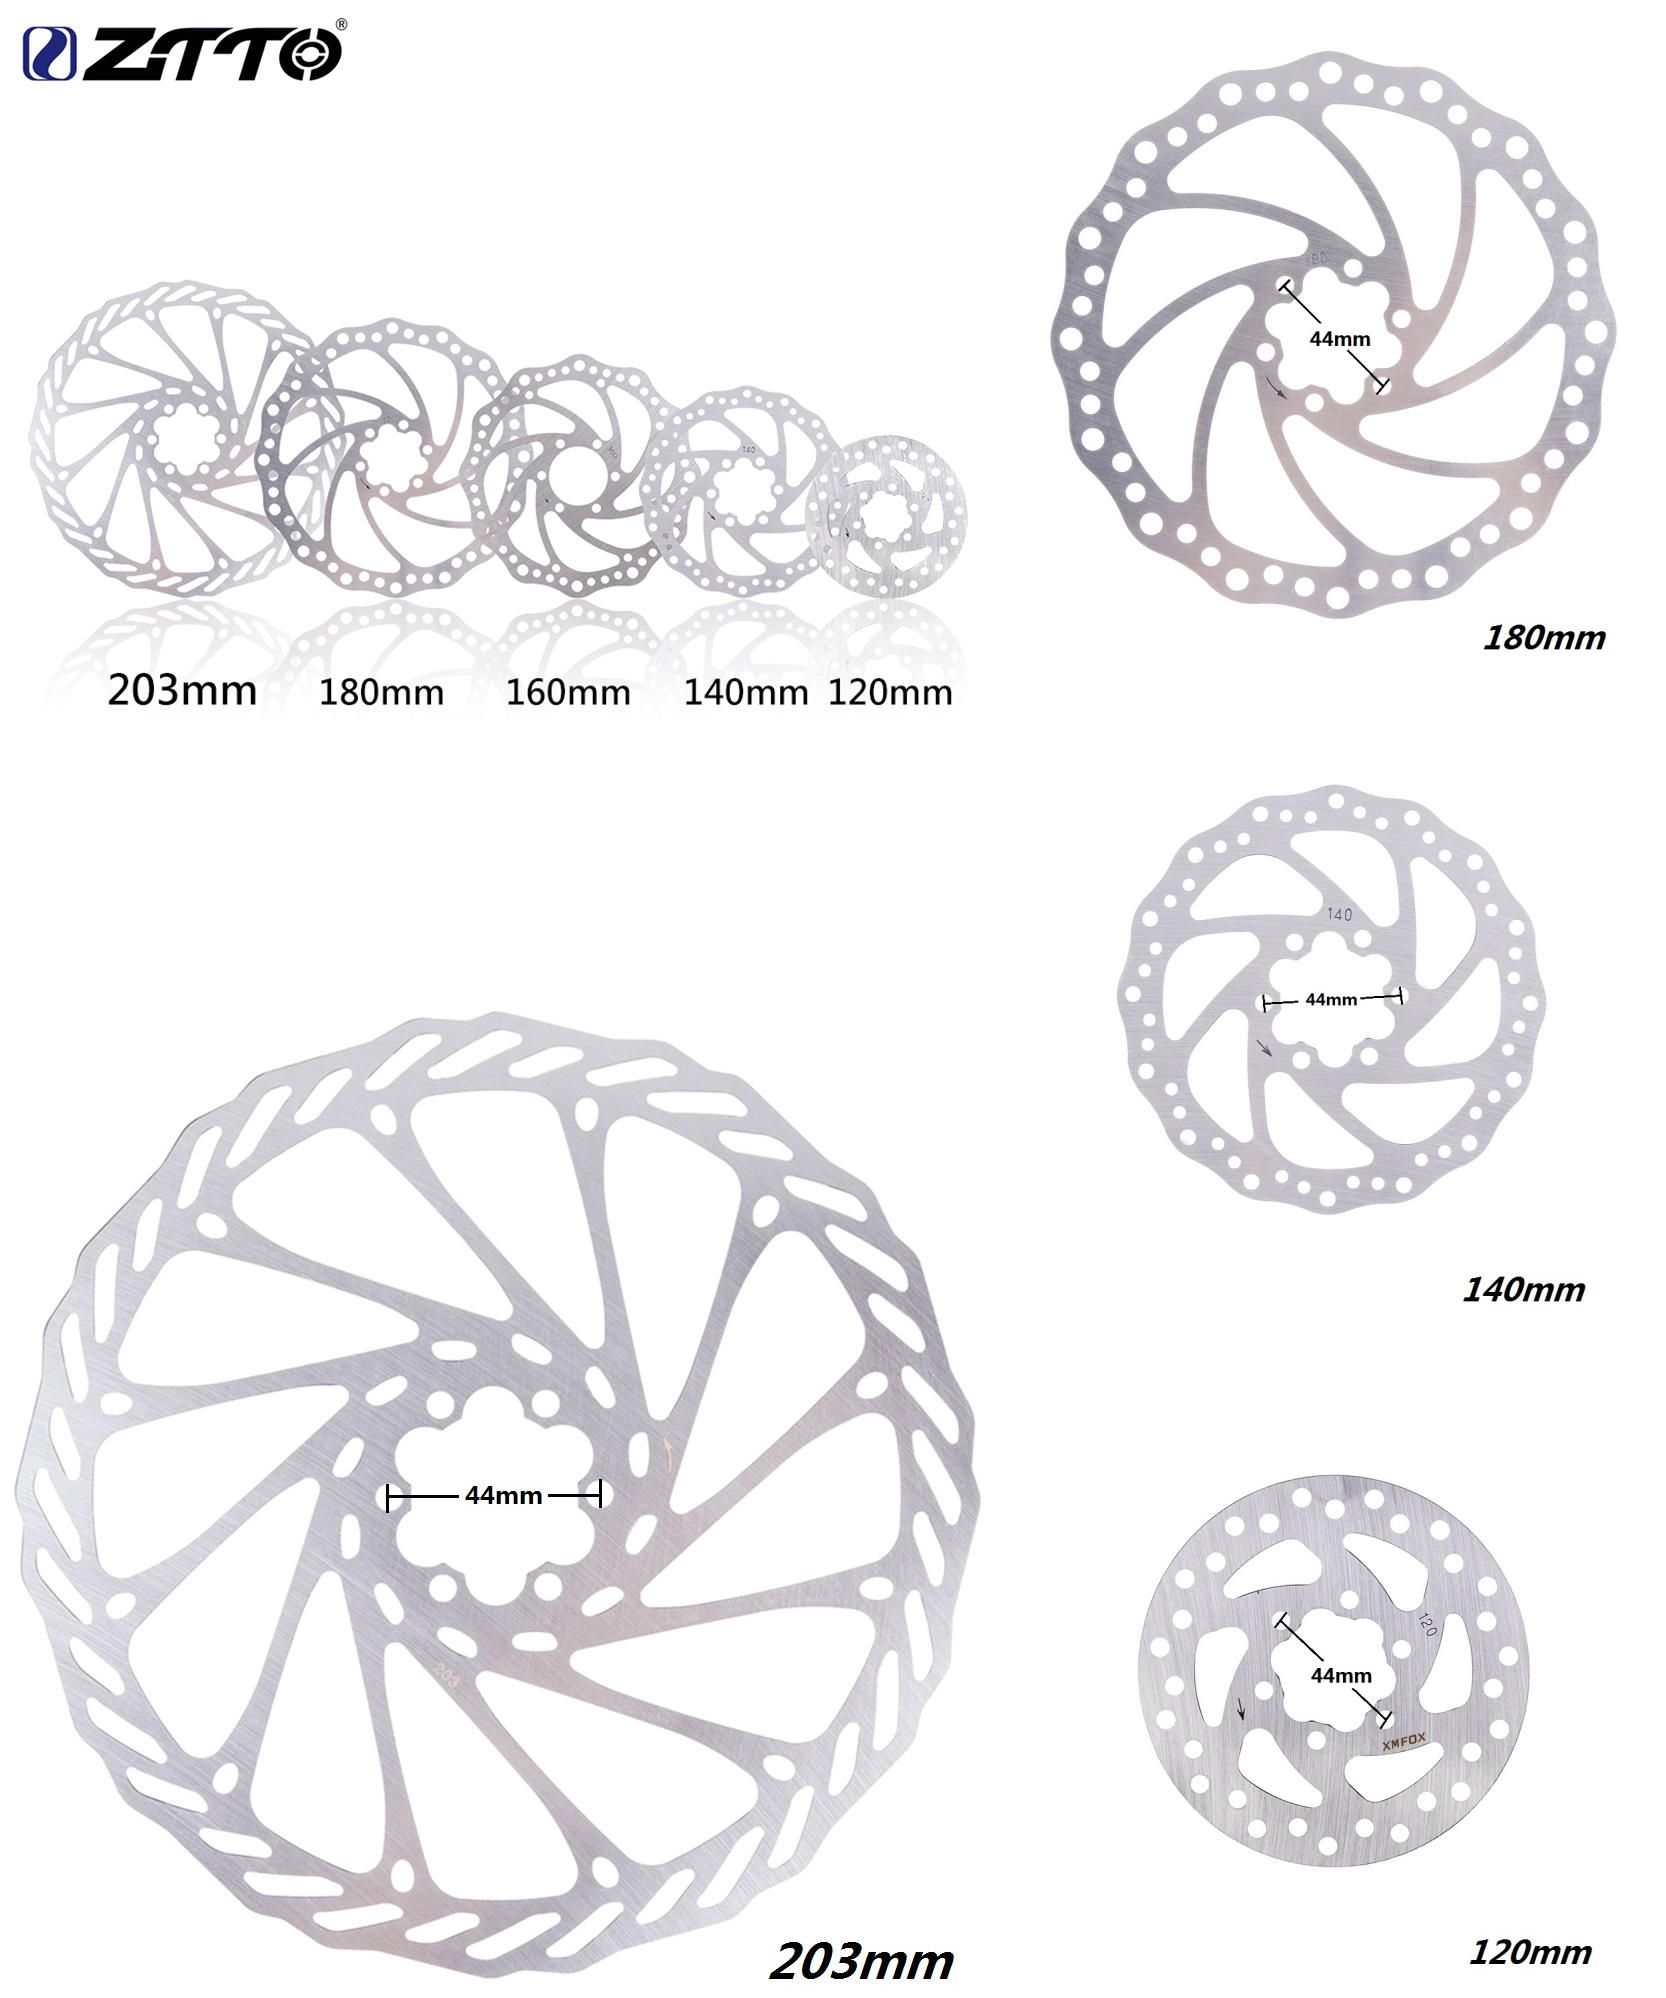 203mm//180mm//160mm//140mm//120mm ZTTO MTB Bike Bicycle Stainless Steel Rotor Disc